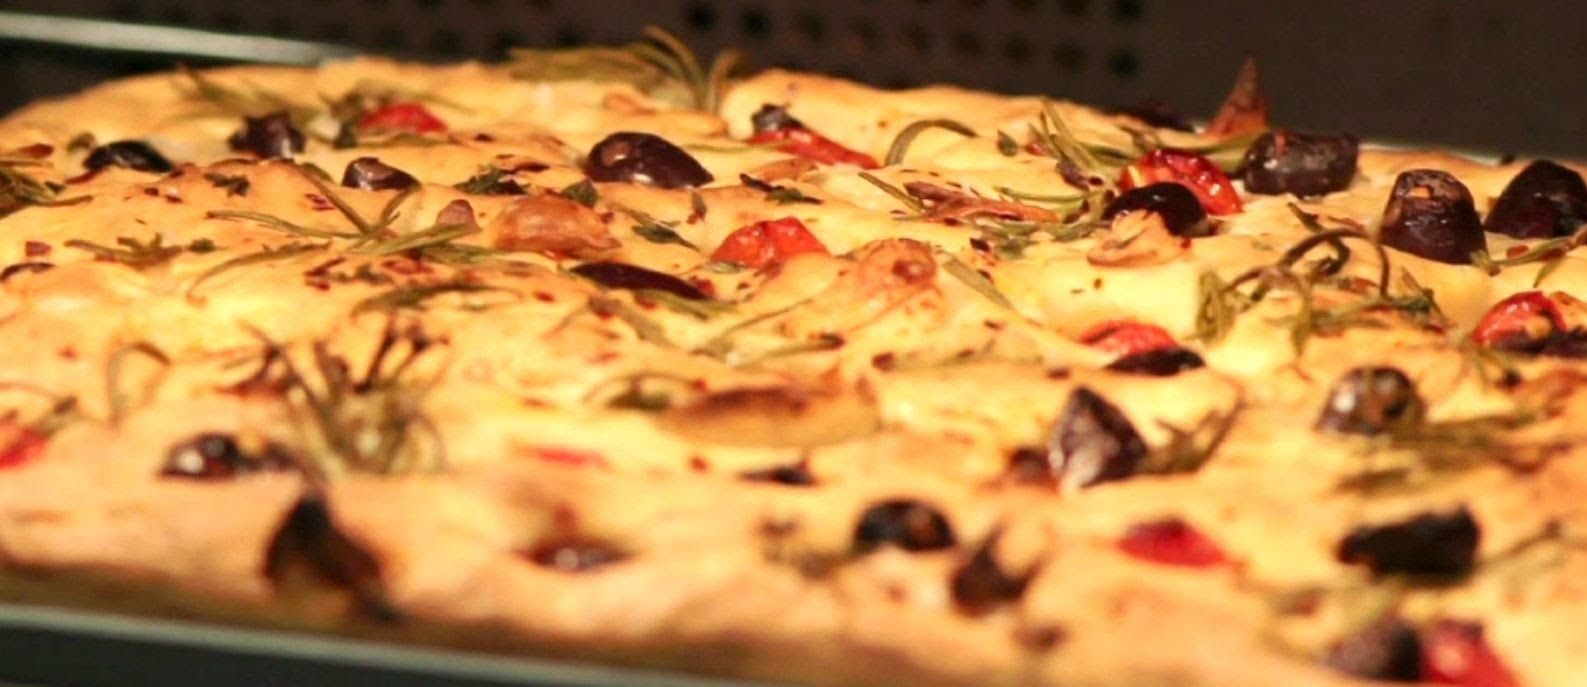 How To Make A Focaccia With Curtis Stone Coles Cooking Stone Curtis Stone Recipes Cooking Dried Beans